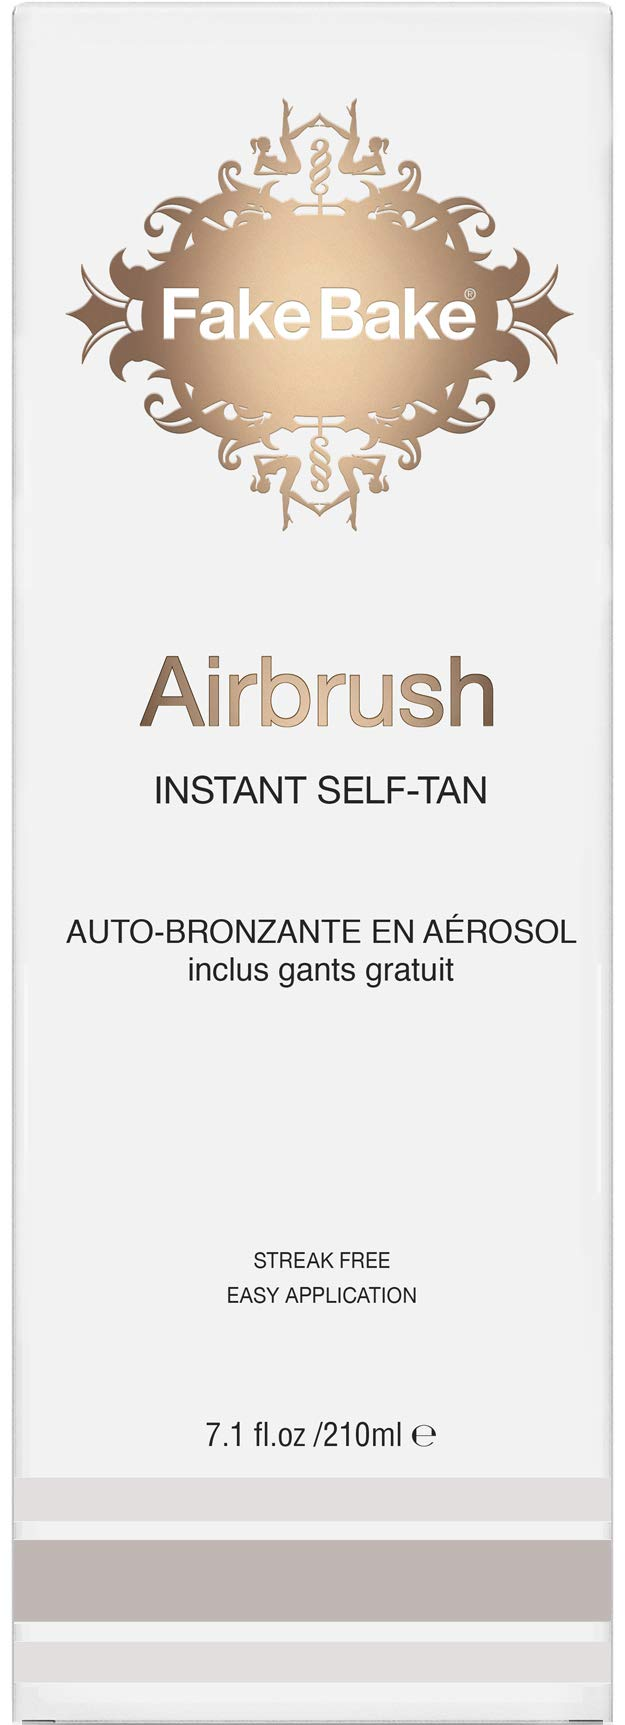 Instant Self Tanning Spray AirBrush by Fake Bake | Fast Drying Formula that Develops the Perfect Golden Bronze Tan in Few Hours | Refined 360˚ Nozzle Gives a Continuous Spray at Any Angle | 7.1 fl oz by Fake Bake